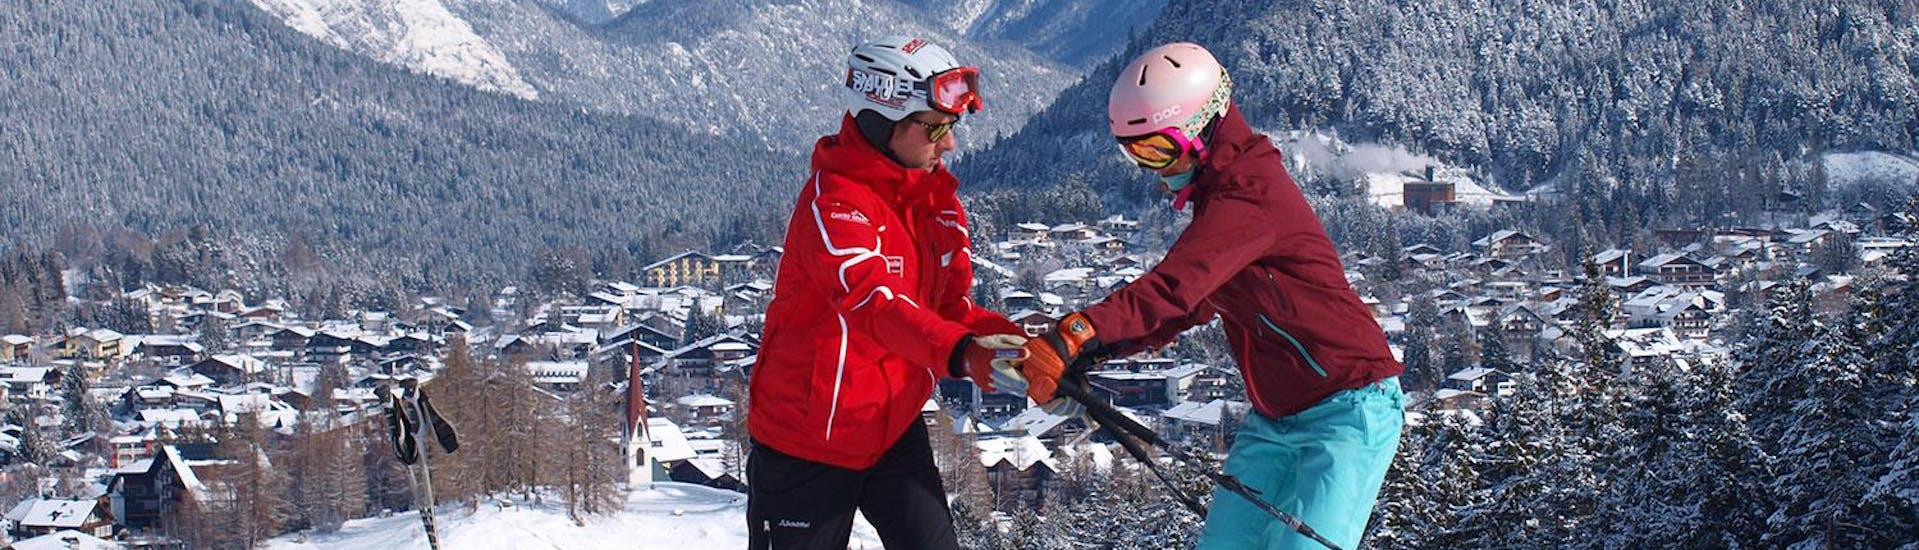 Ski Instructor shows his ski student the right arm position